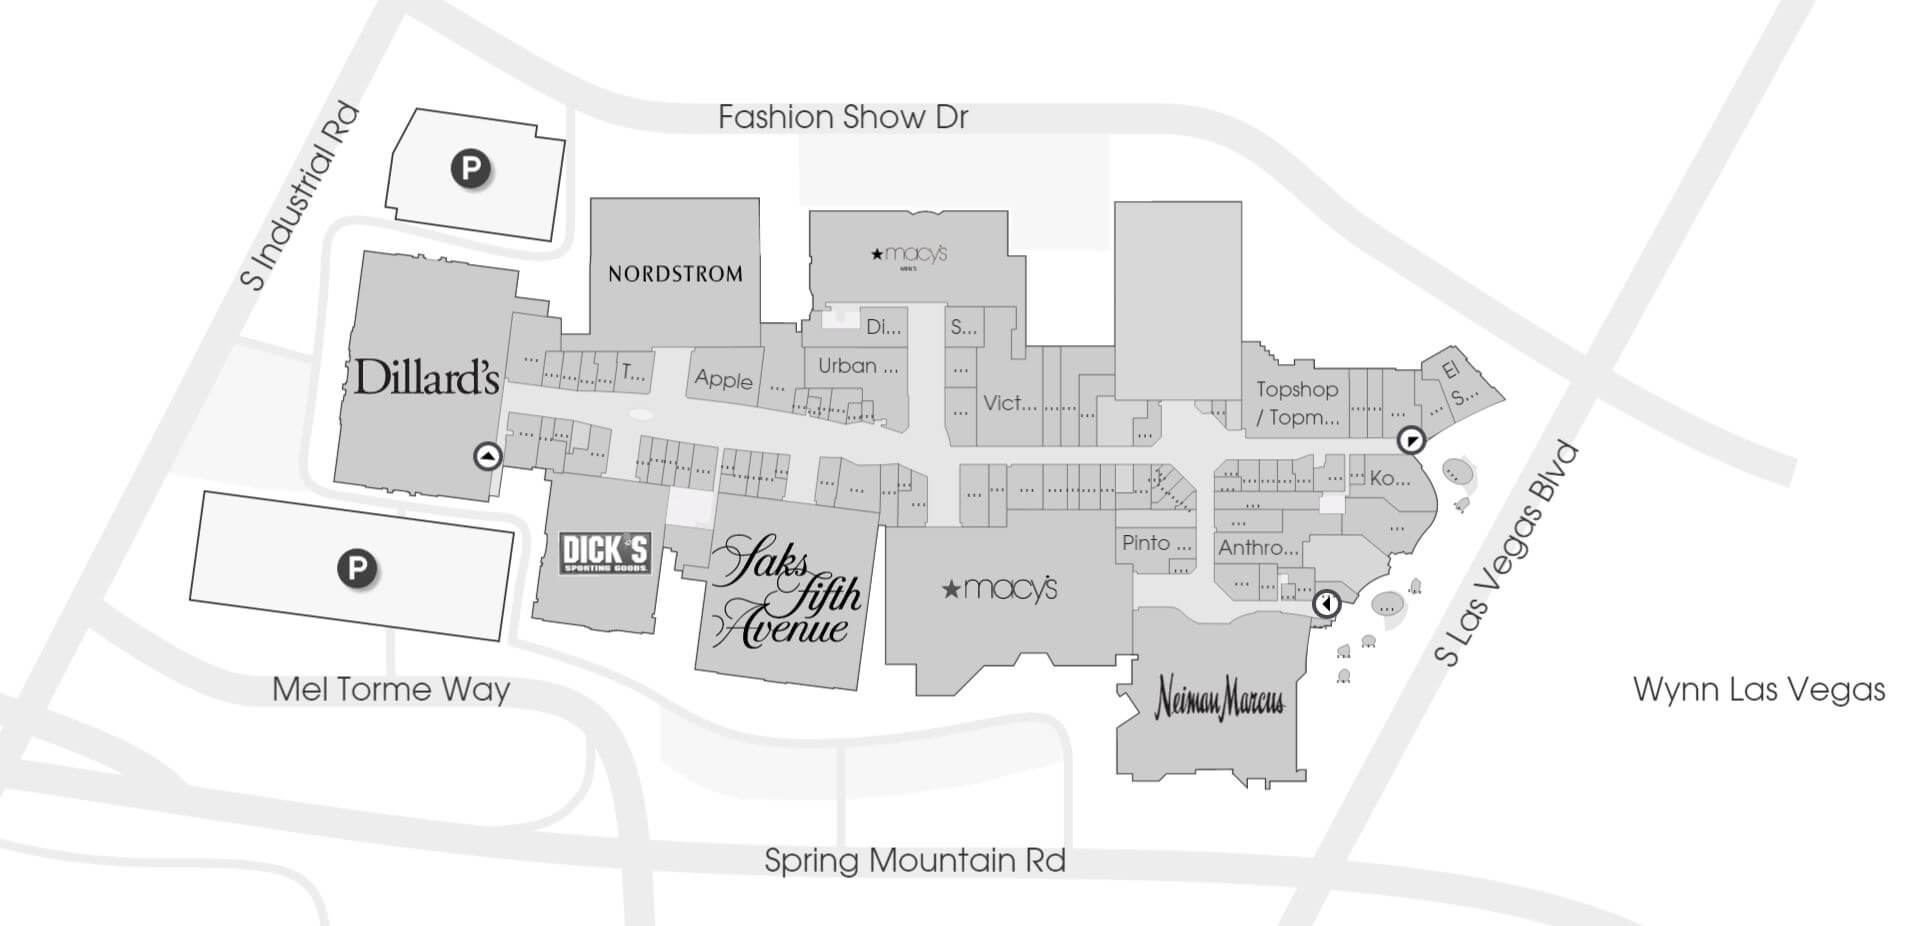 Fashion Show Mall Map Fashion Show Mall | VIP Dine 4Less Card